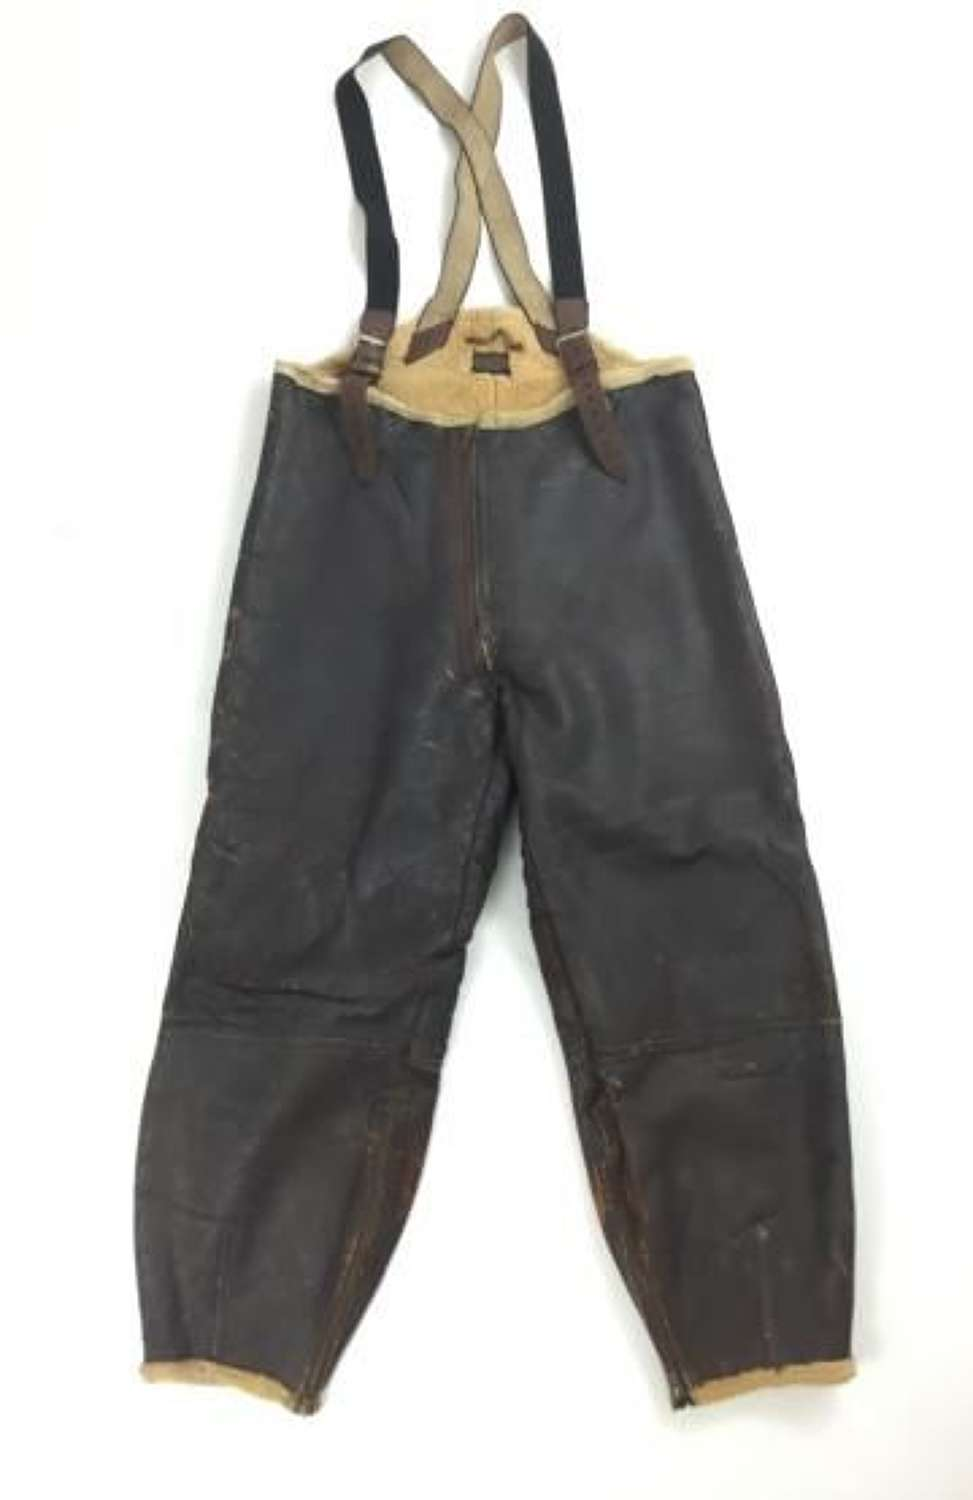 Original USAAF B-1 Mechanics Sheepskin Trousers